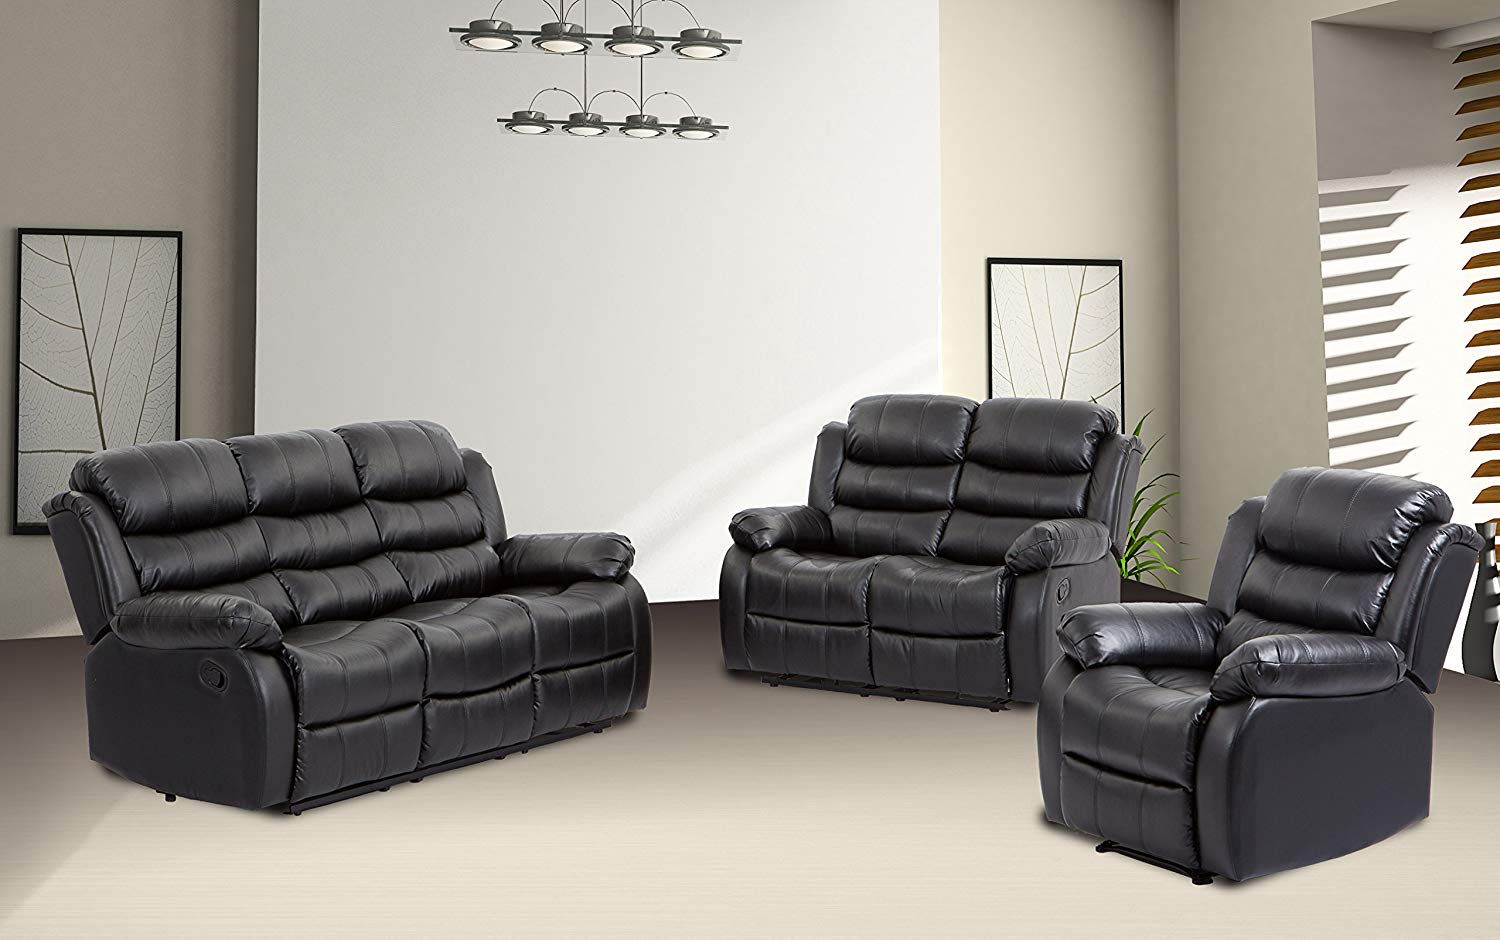 Get Quotations Bestmage Sofa Recliner Set Reclining Chair Sectional Love Seat For Living Room Modern Furniture Clic